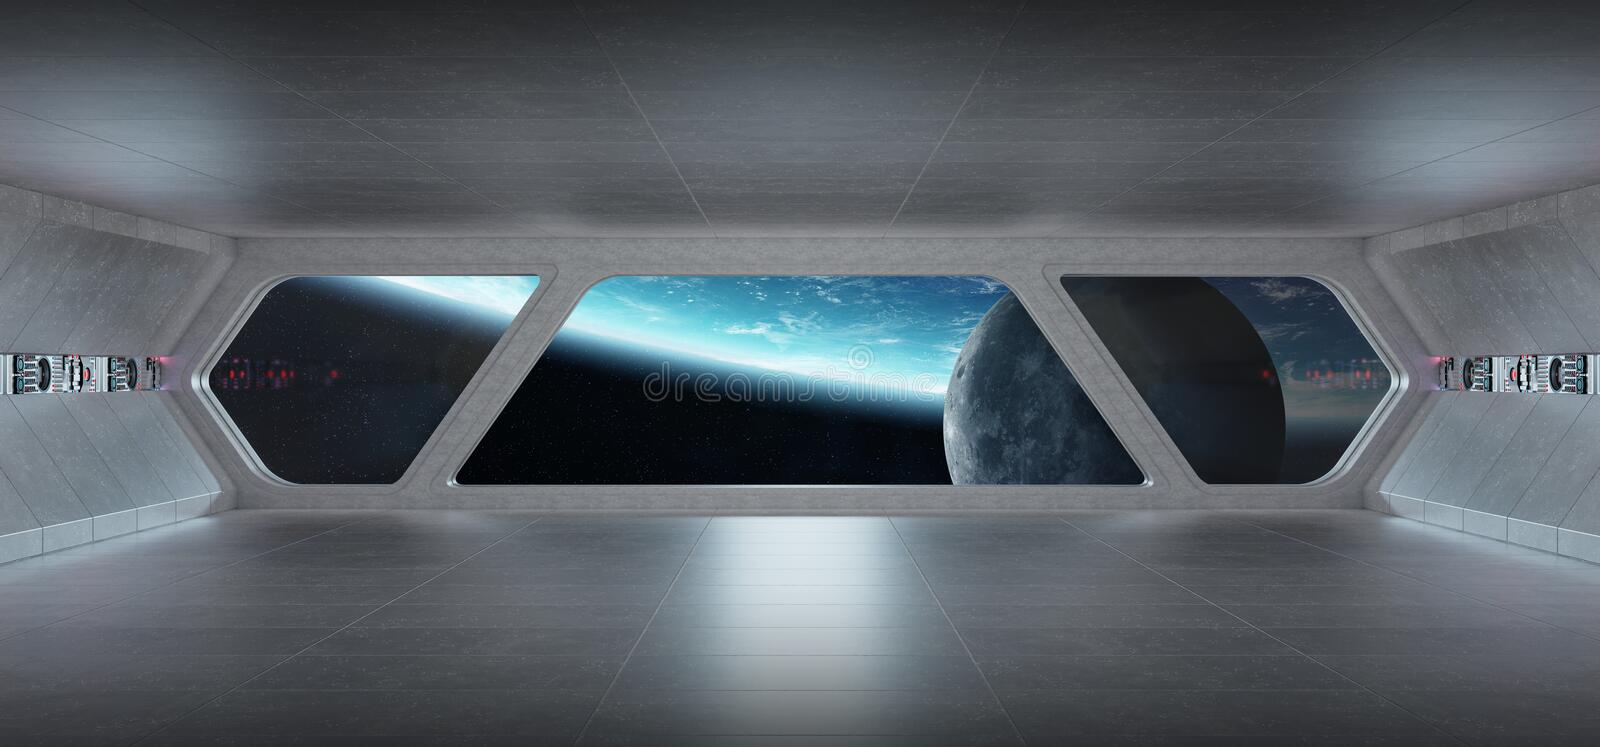 Spaceship futuristic grey blue interior with view on planet Earth stock illustration